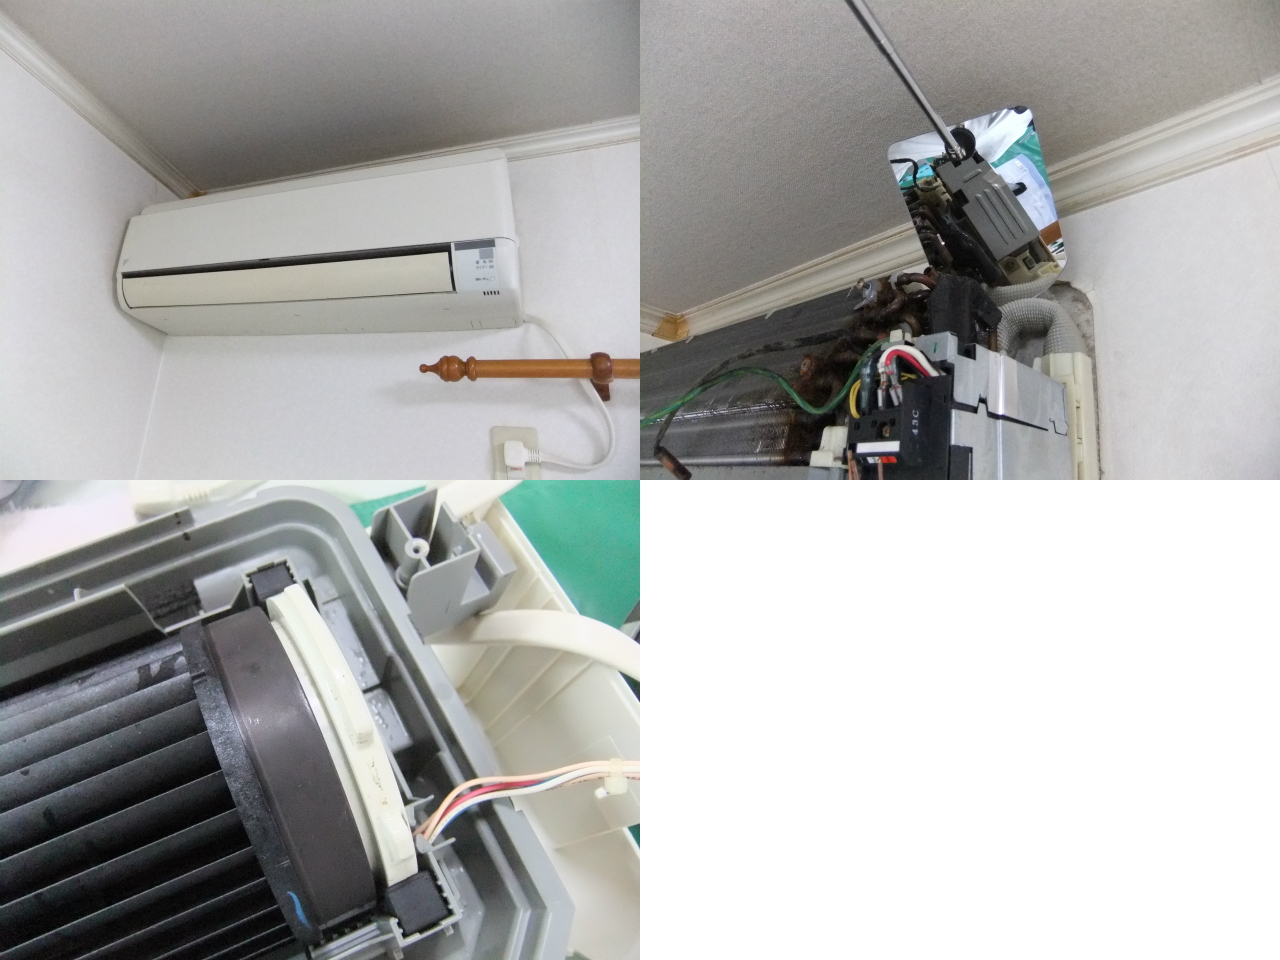 http://ajras.net/images/120730-aircon3a.jpg